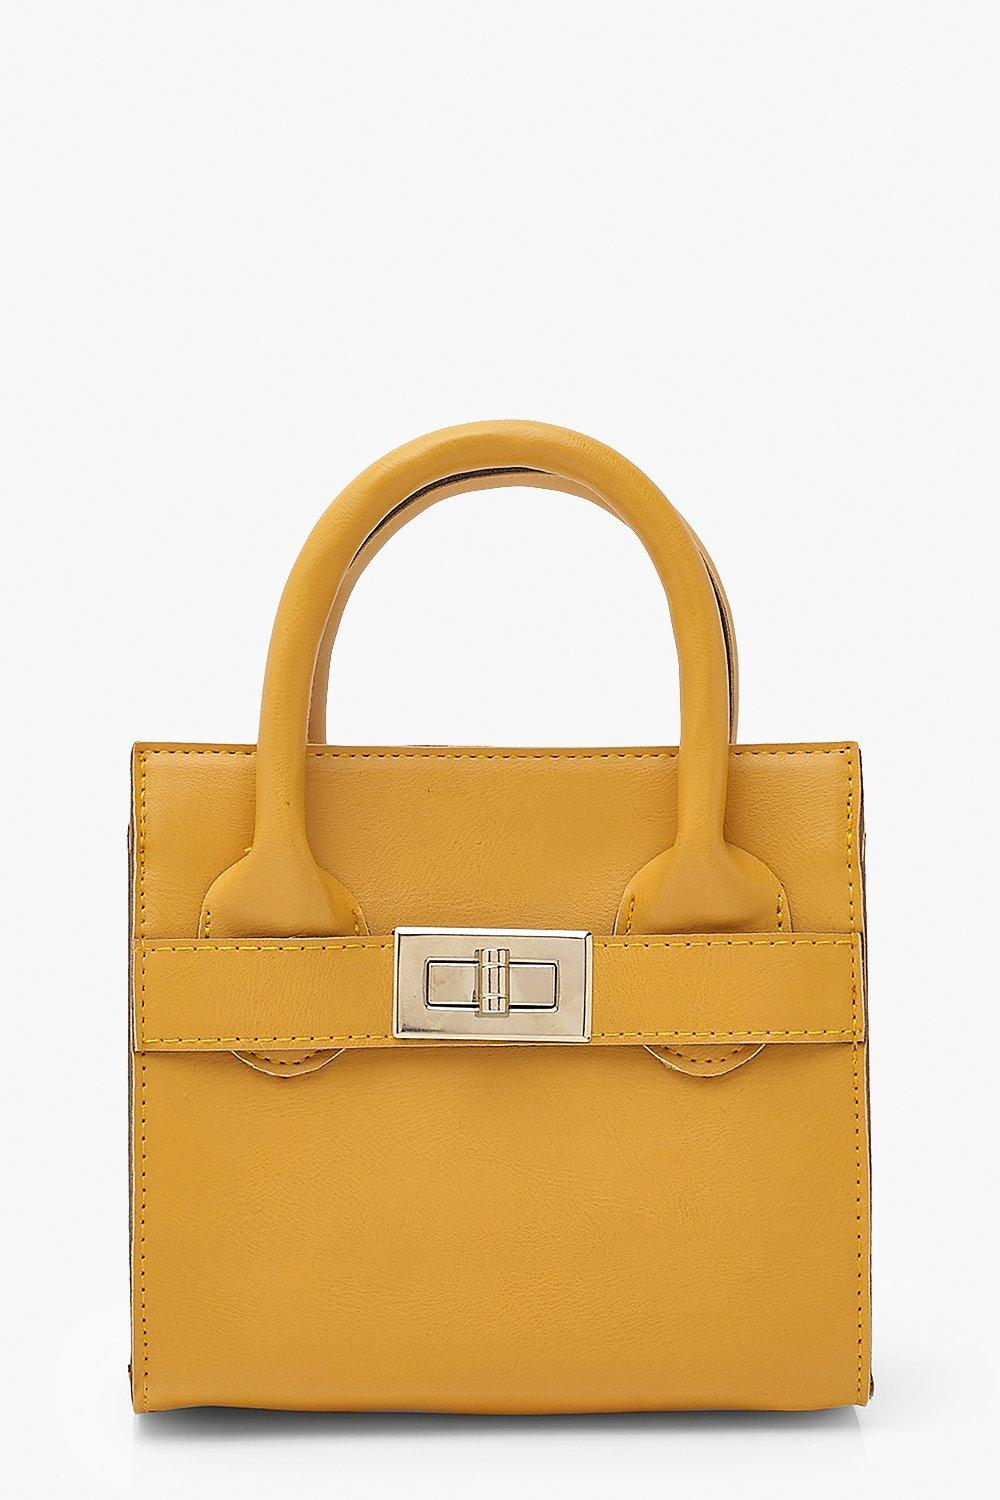 boohoo Womens Smooth Pu Lock Detail Bag & Chain - Yellow - One Size, Yellow